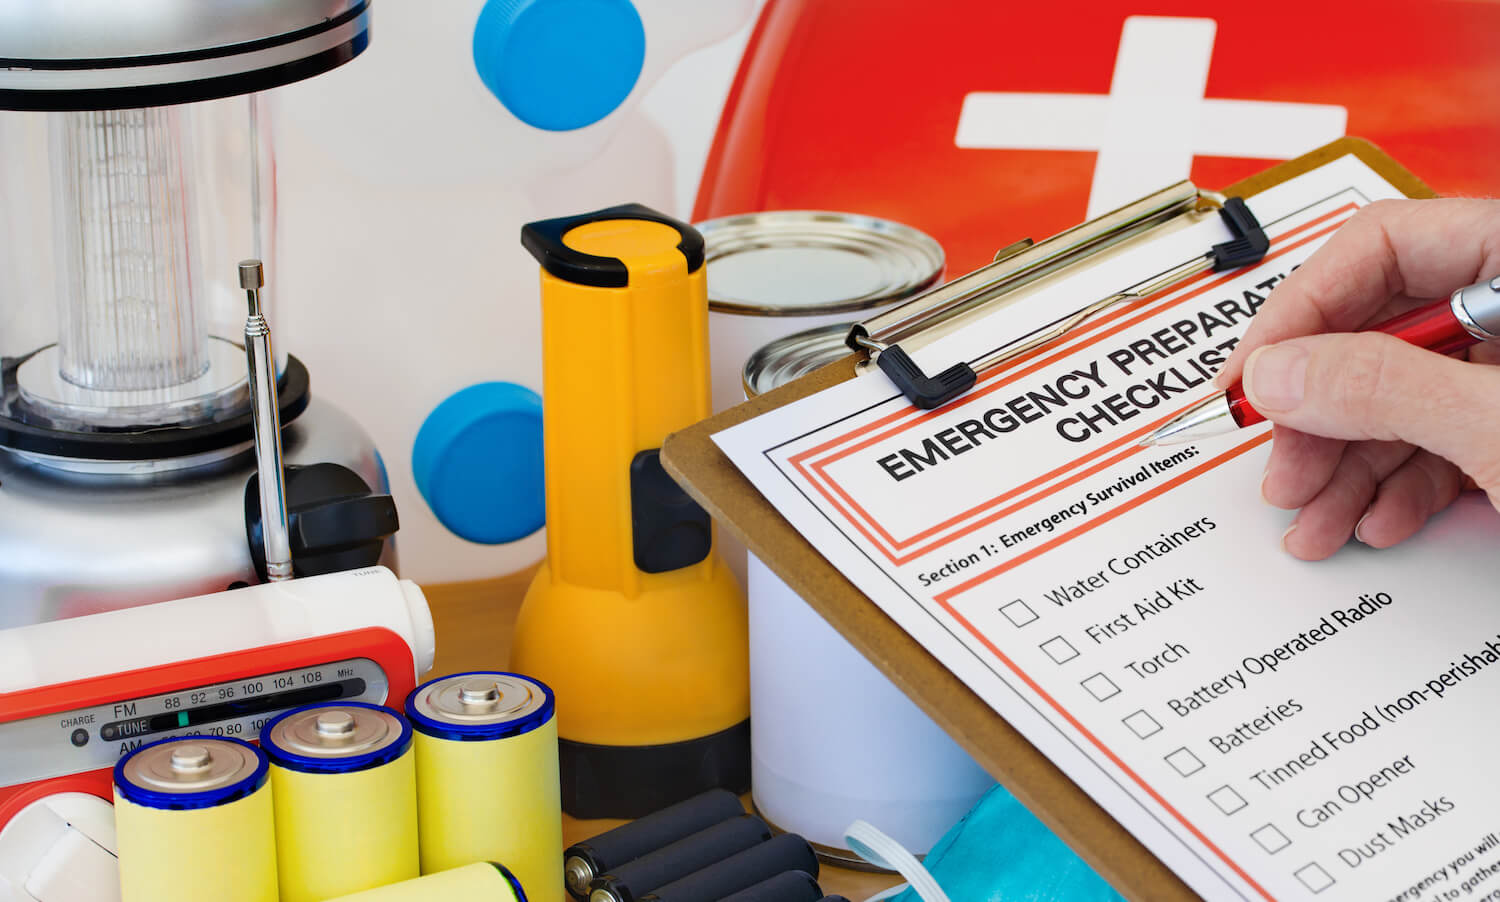 hand checking emergency preparation list and equipment